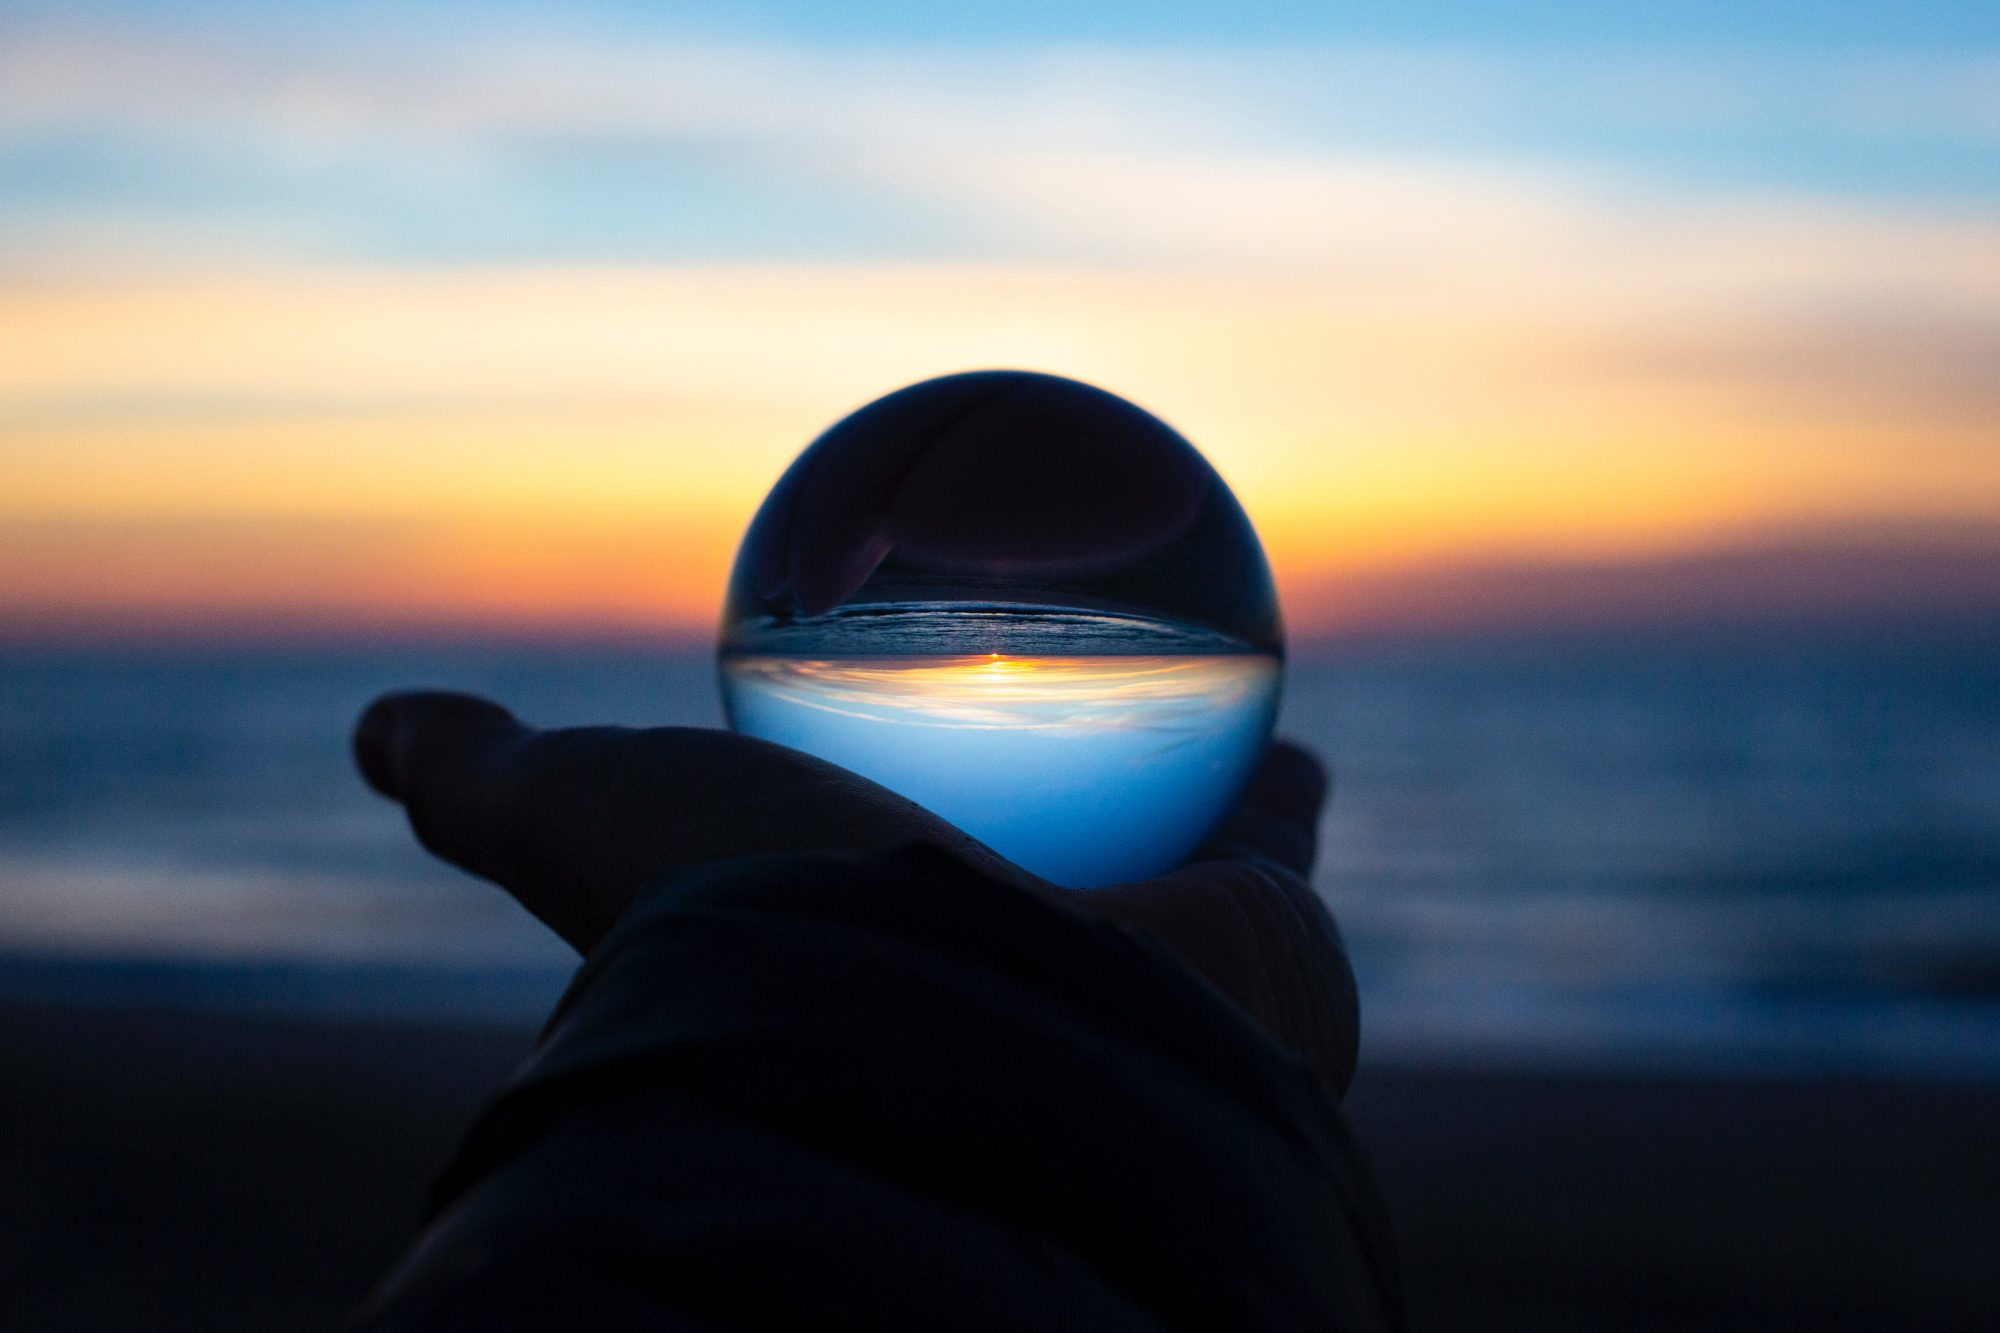 Holding an orb over the ocean